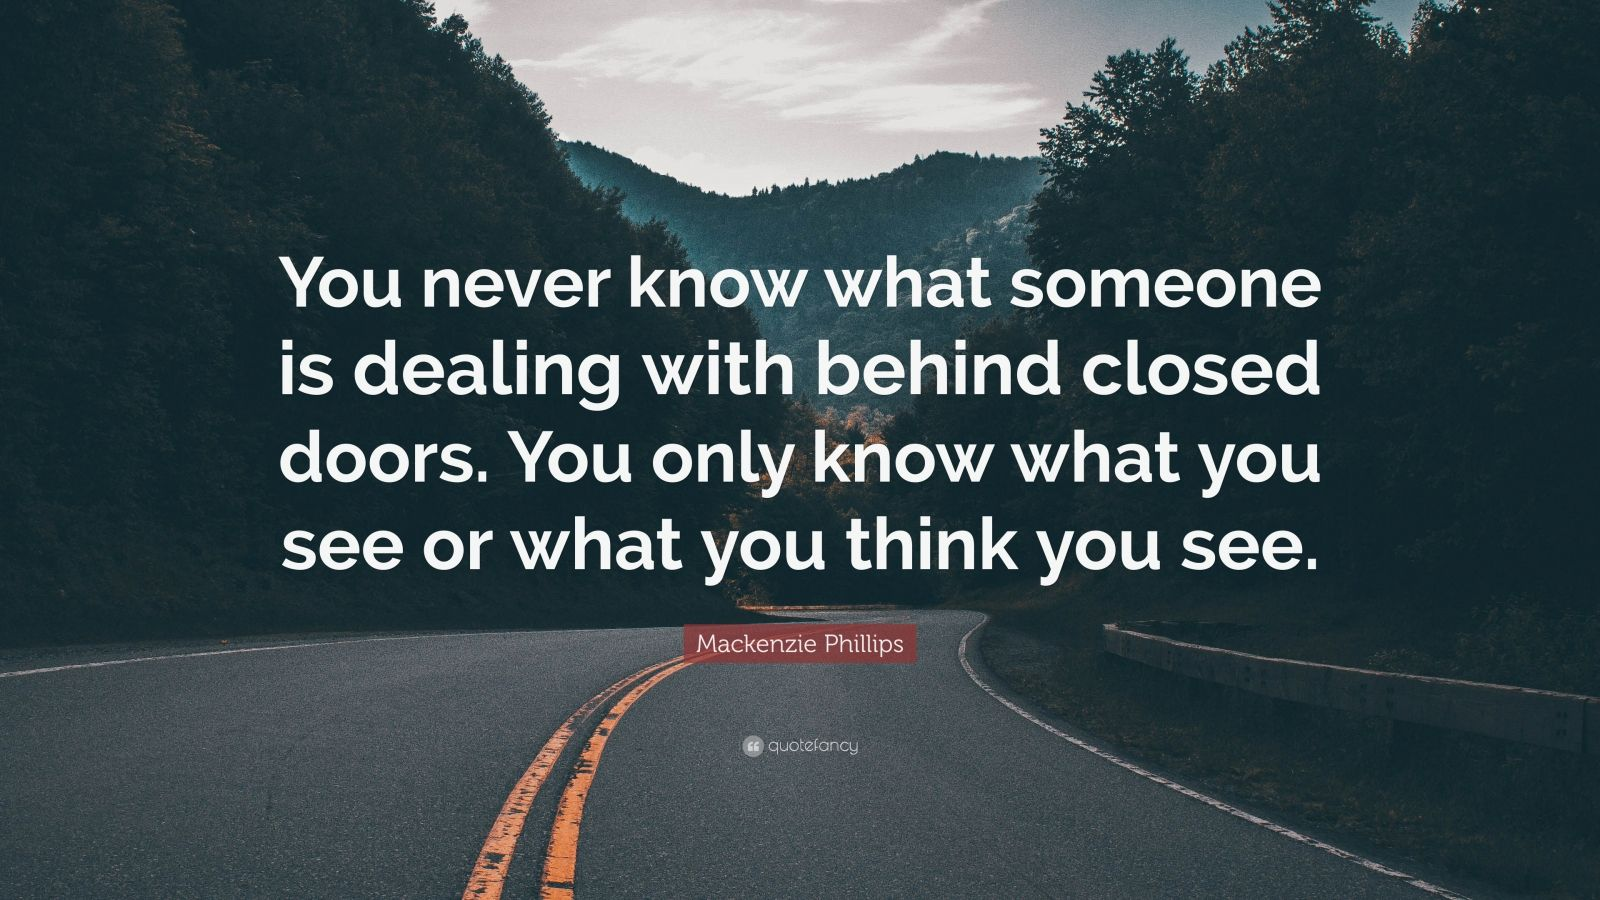 """Mackenzie Phillips Quote: """"You never know what someone is dealing with behind closed doors. You only know what you see or what you think you see."""""""